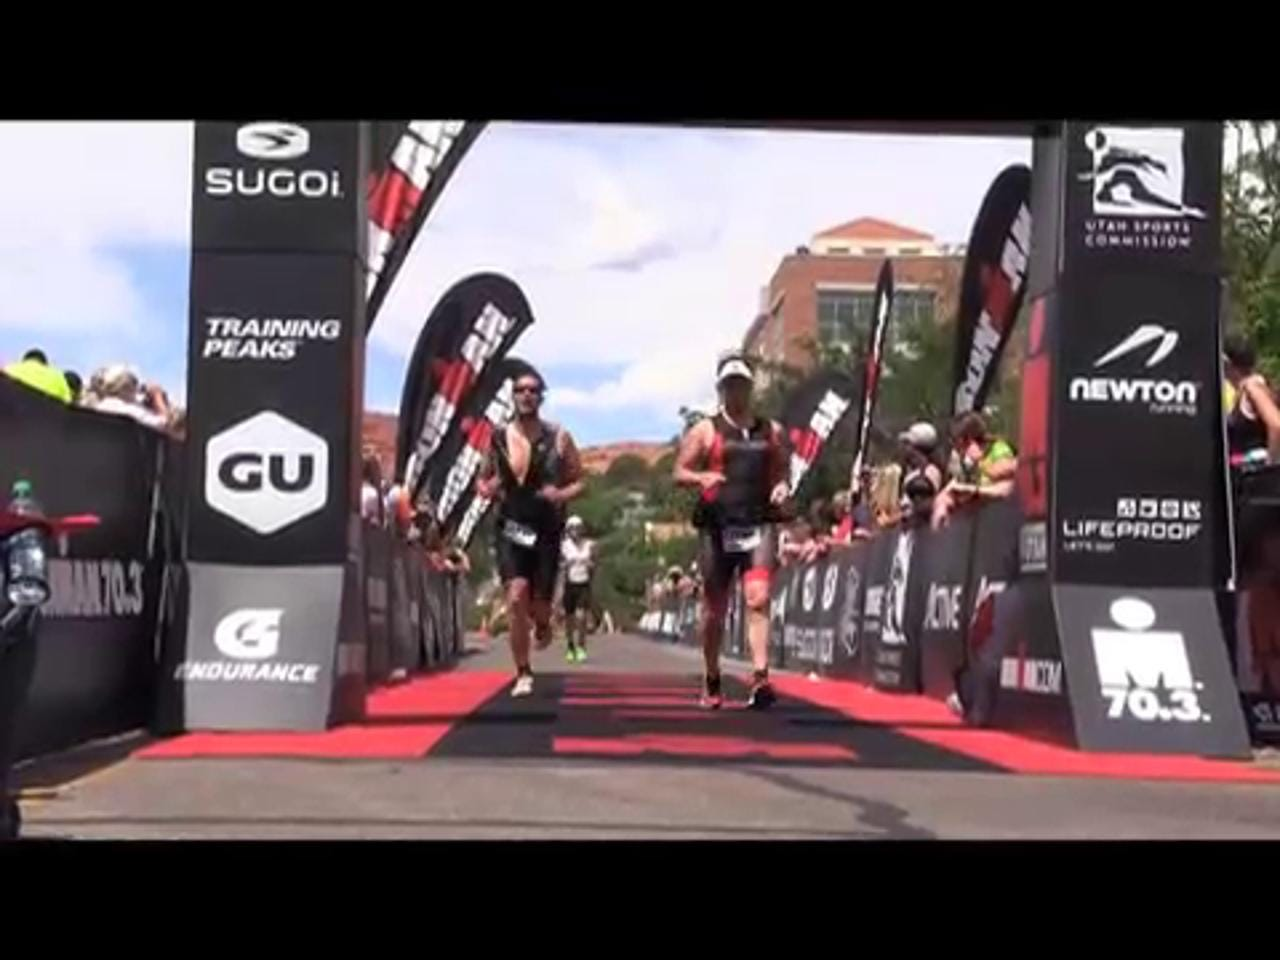 Competitors from around the world traveled to St. George, Utah, to compete on what has been called one of the world's toughest Ironman 70.3 courses on Saturday, May 2, 2015.